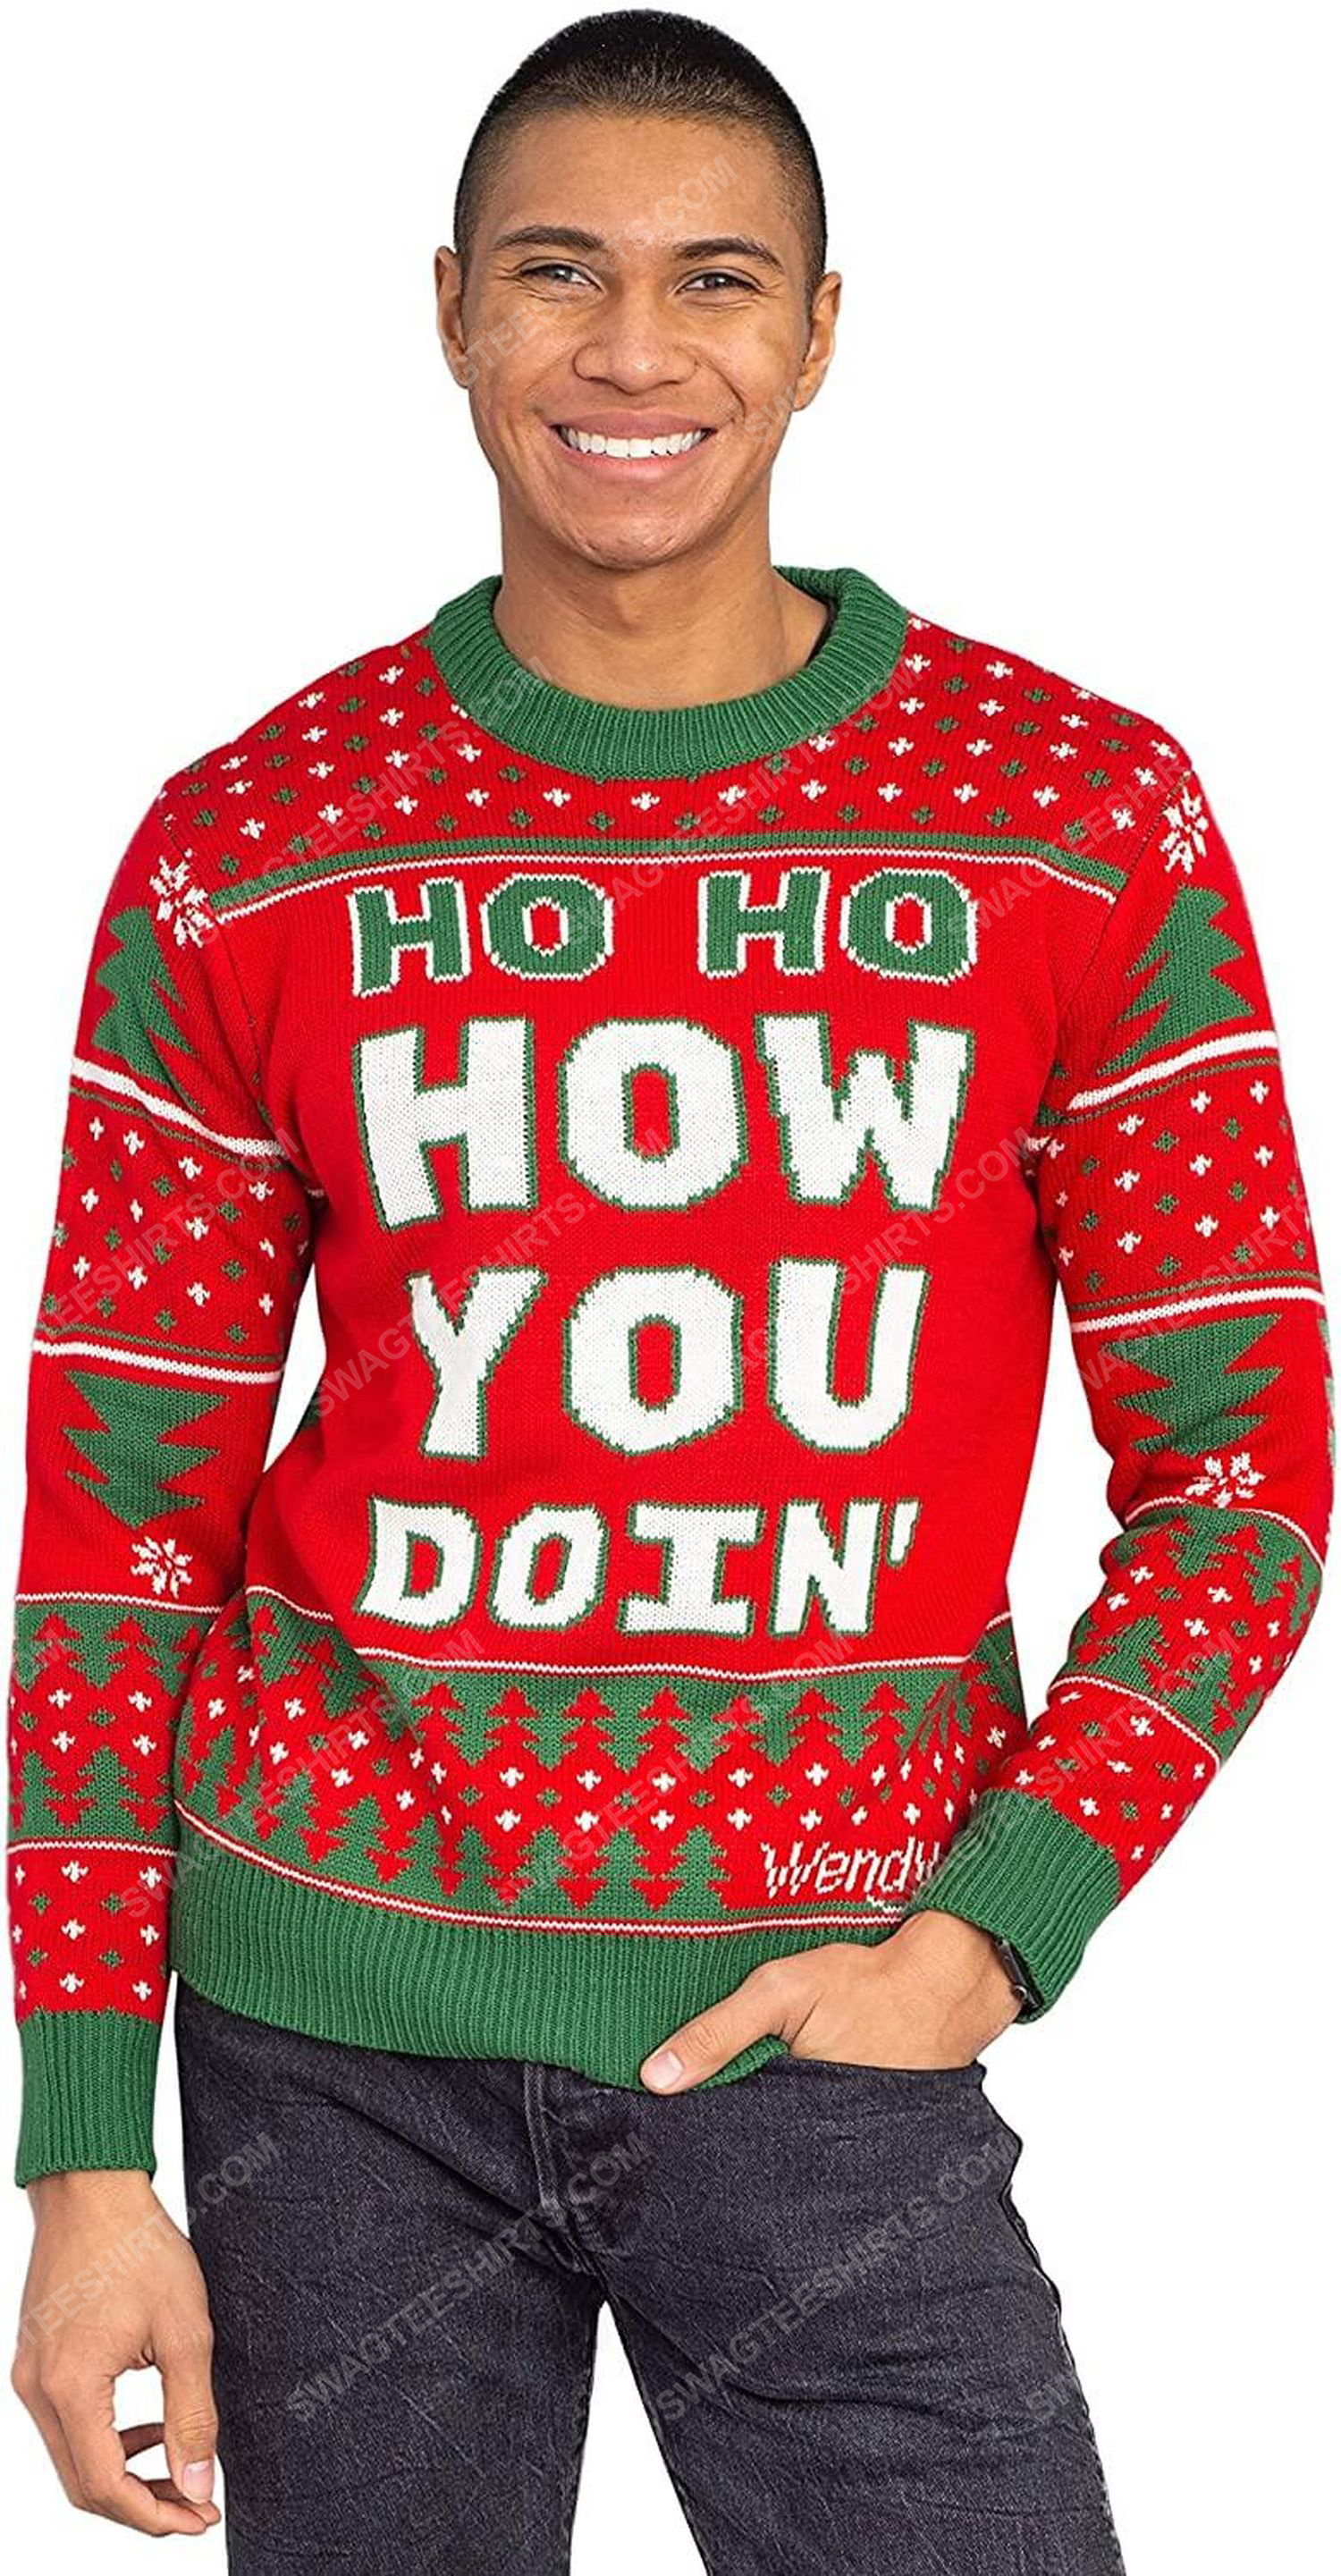 Wendy williams red ho ho how you doin' full print ugly christmas sweater 5